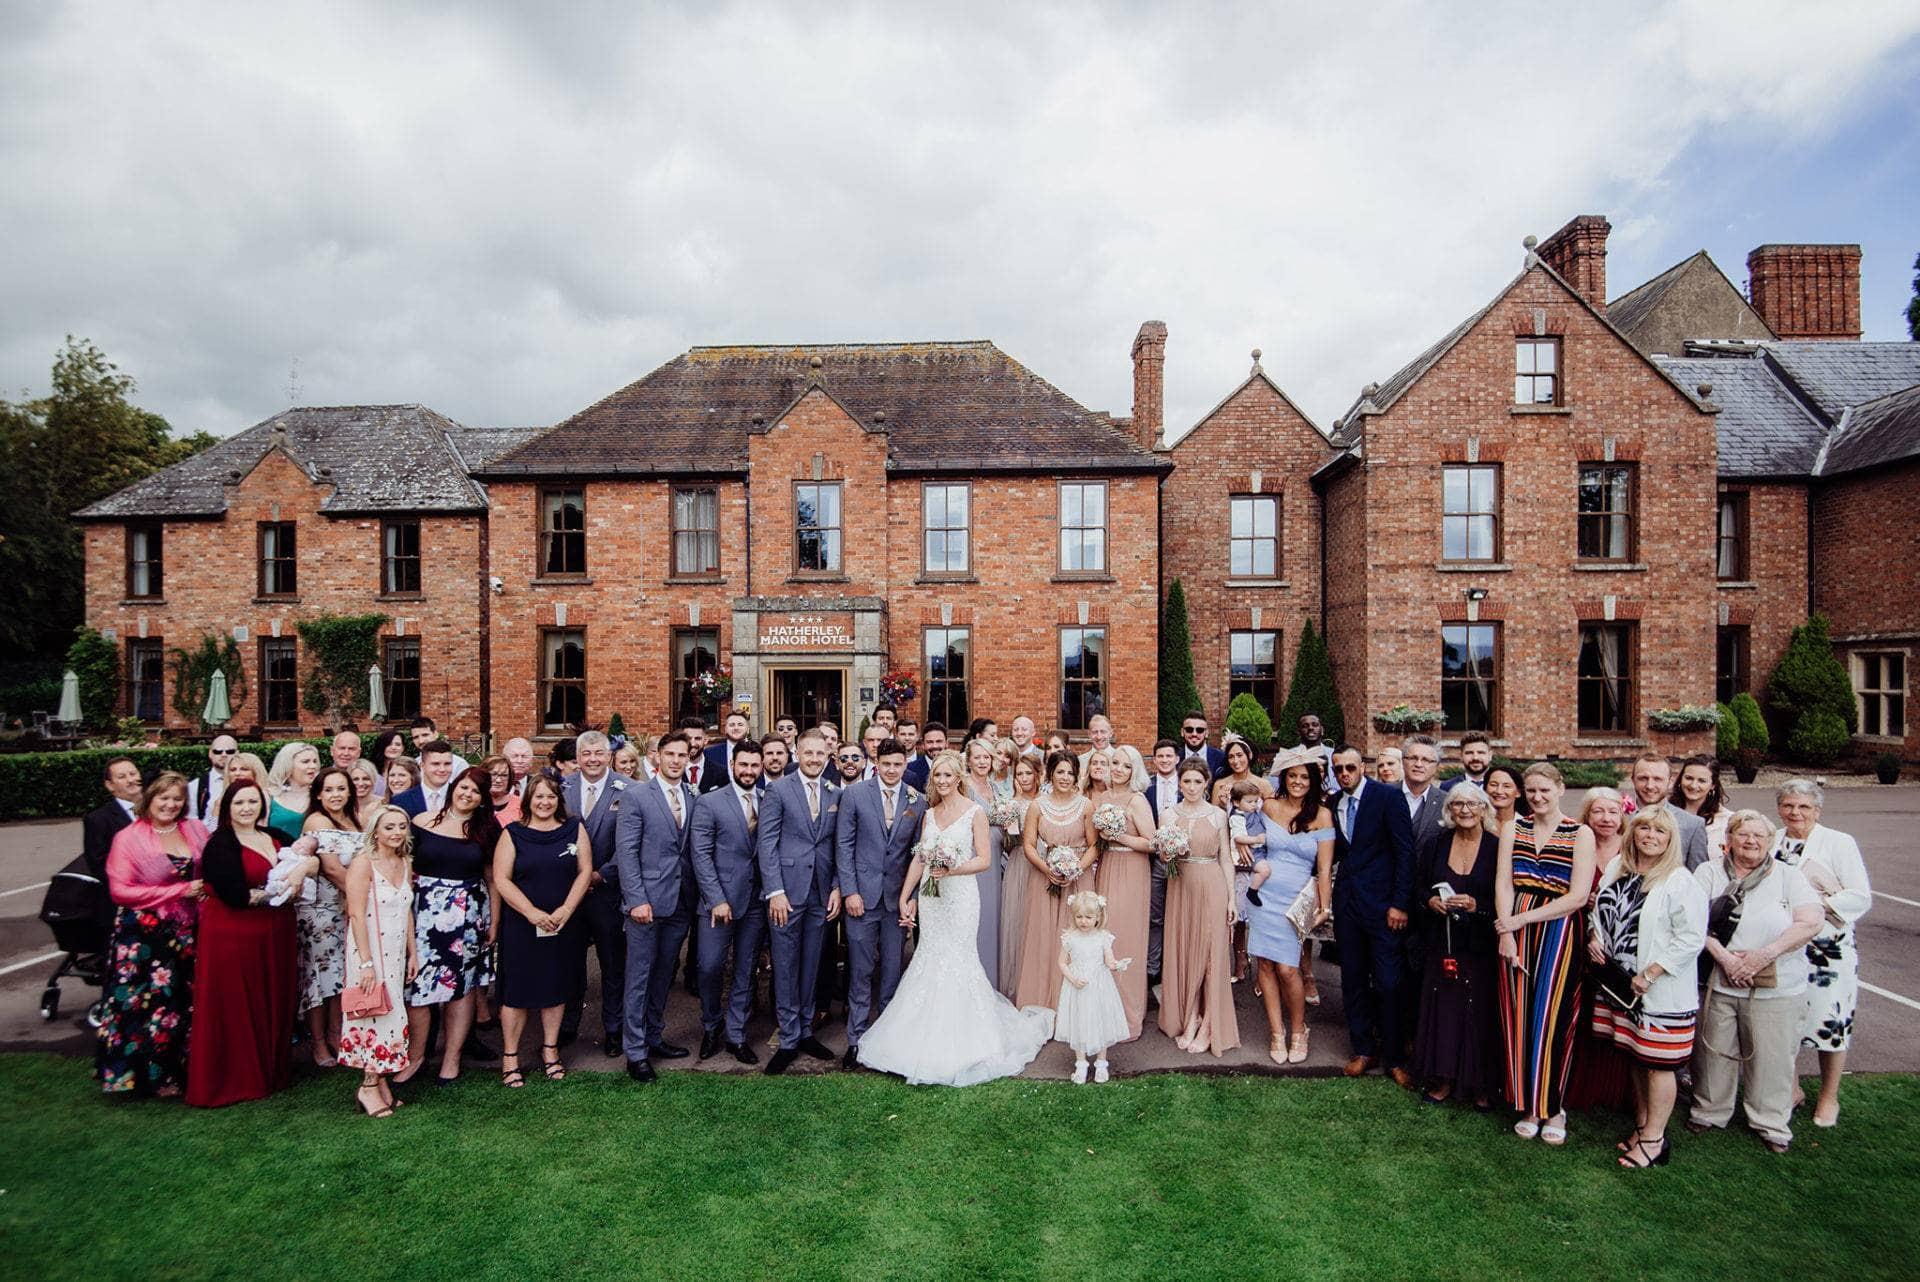 Hatherley Manor wedding photography of a large wedding group stood in front of the hotel